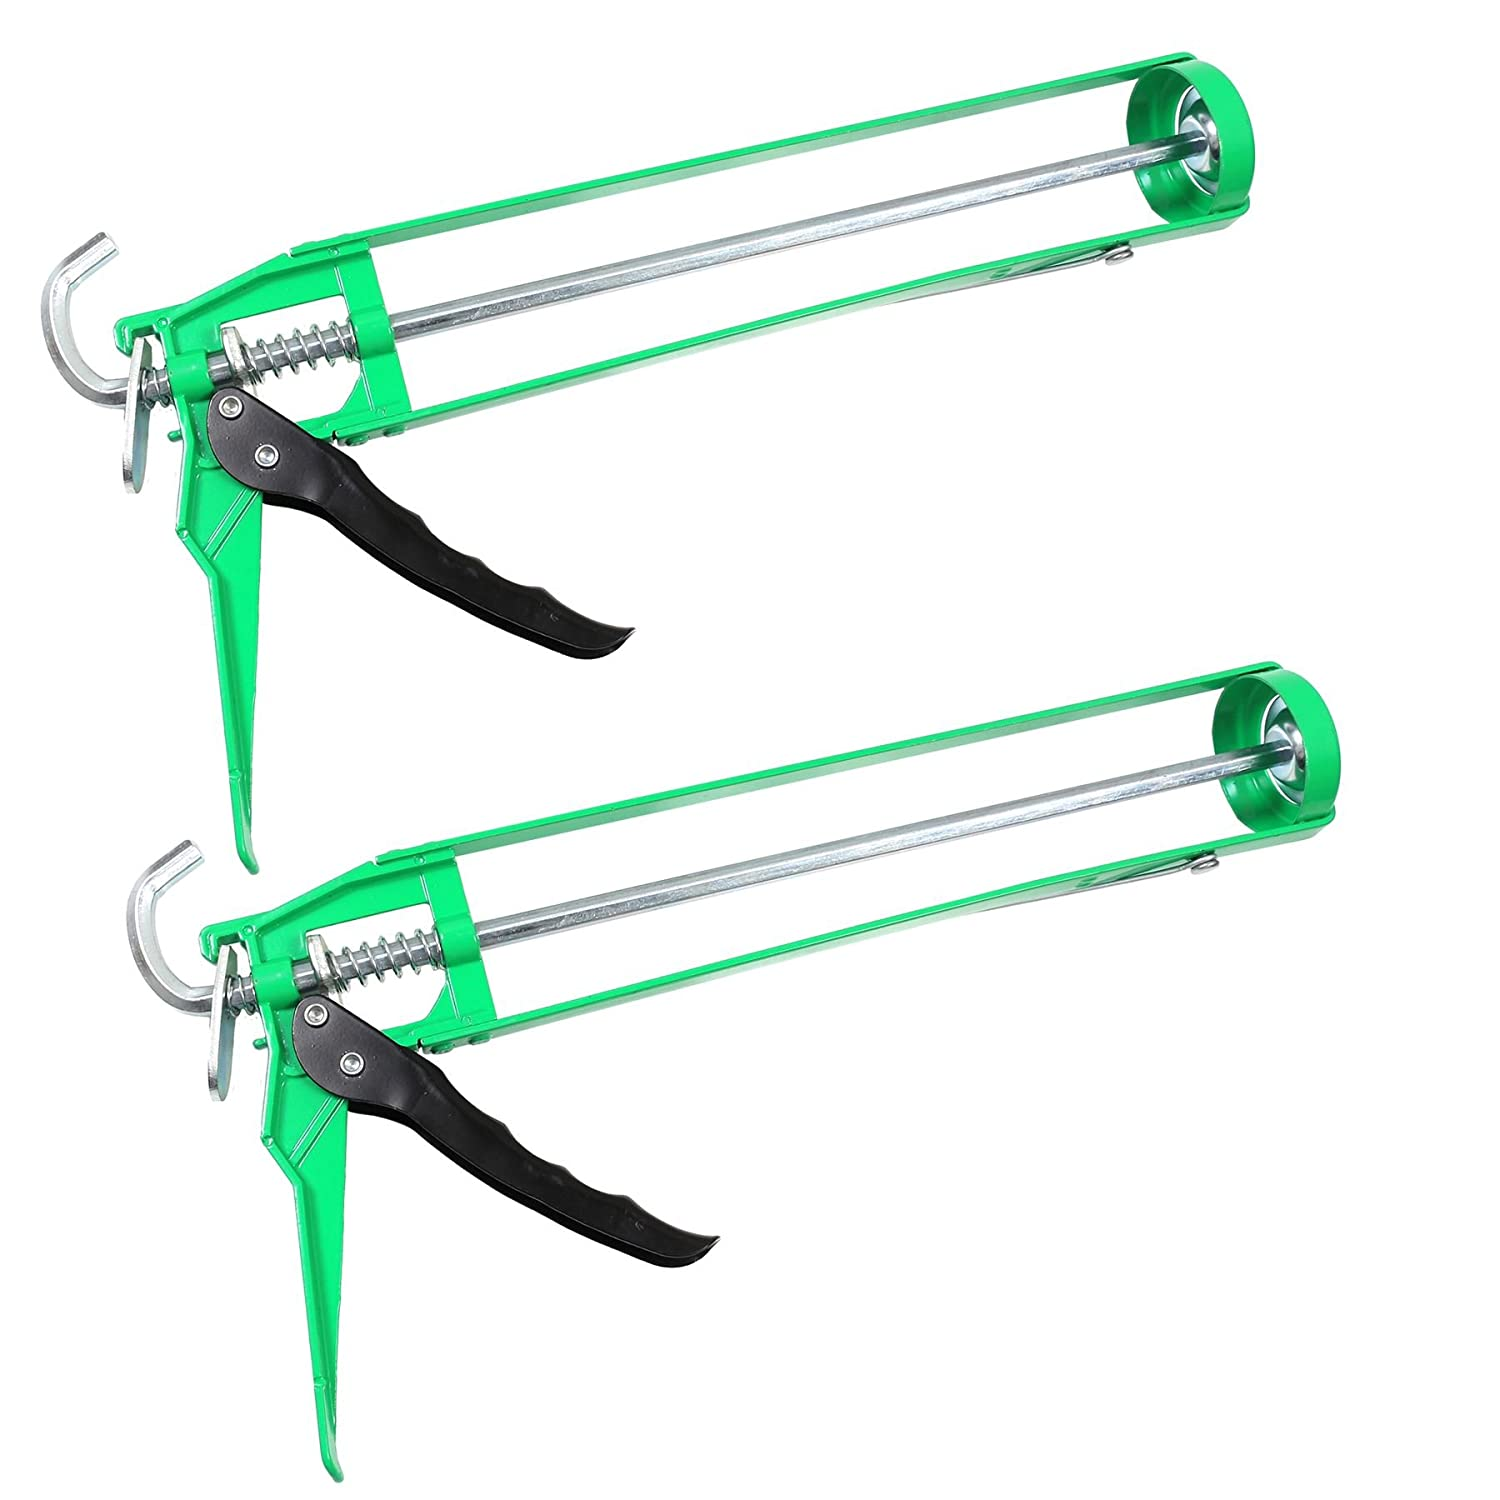 2x Green Heavy Duty 15' Caulking/Adhesive Sealant Guns White Hinge